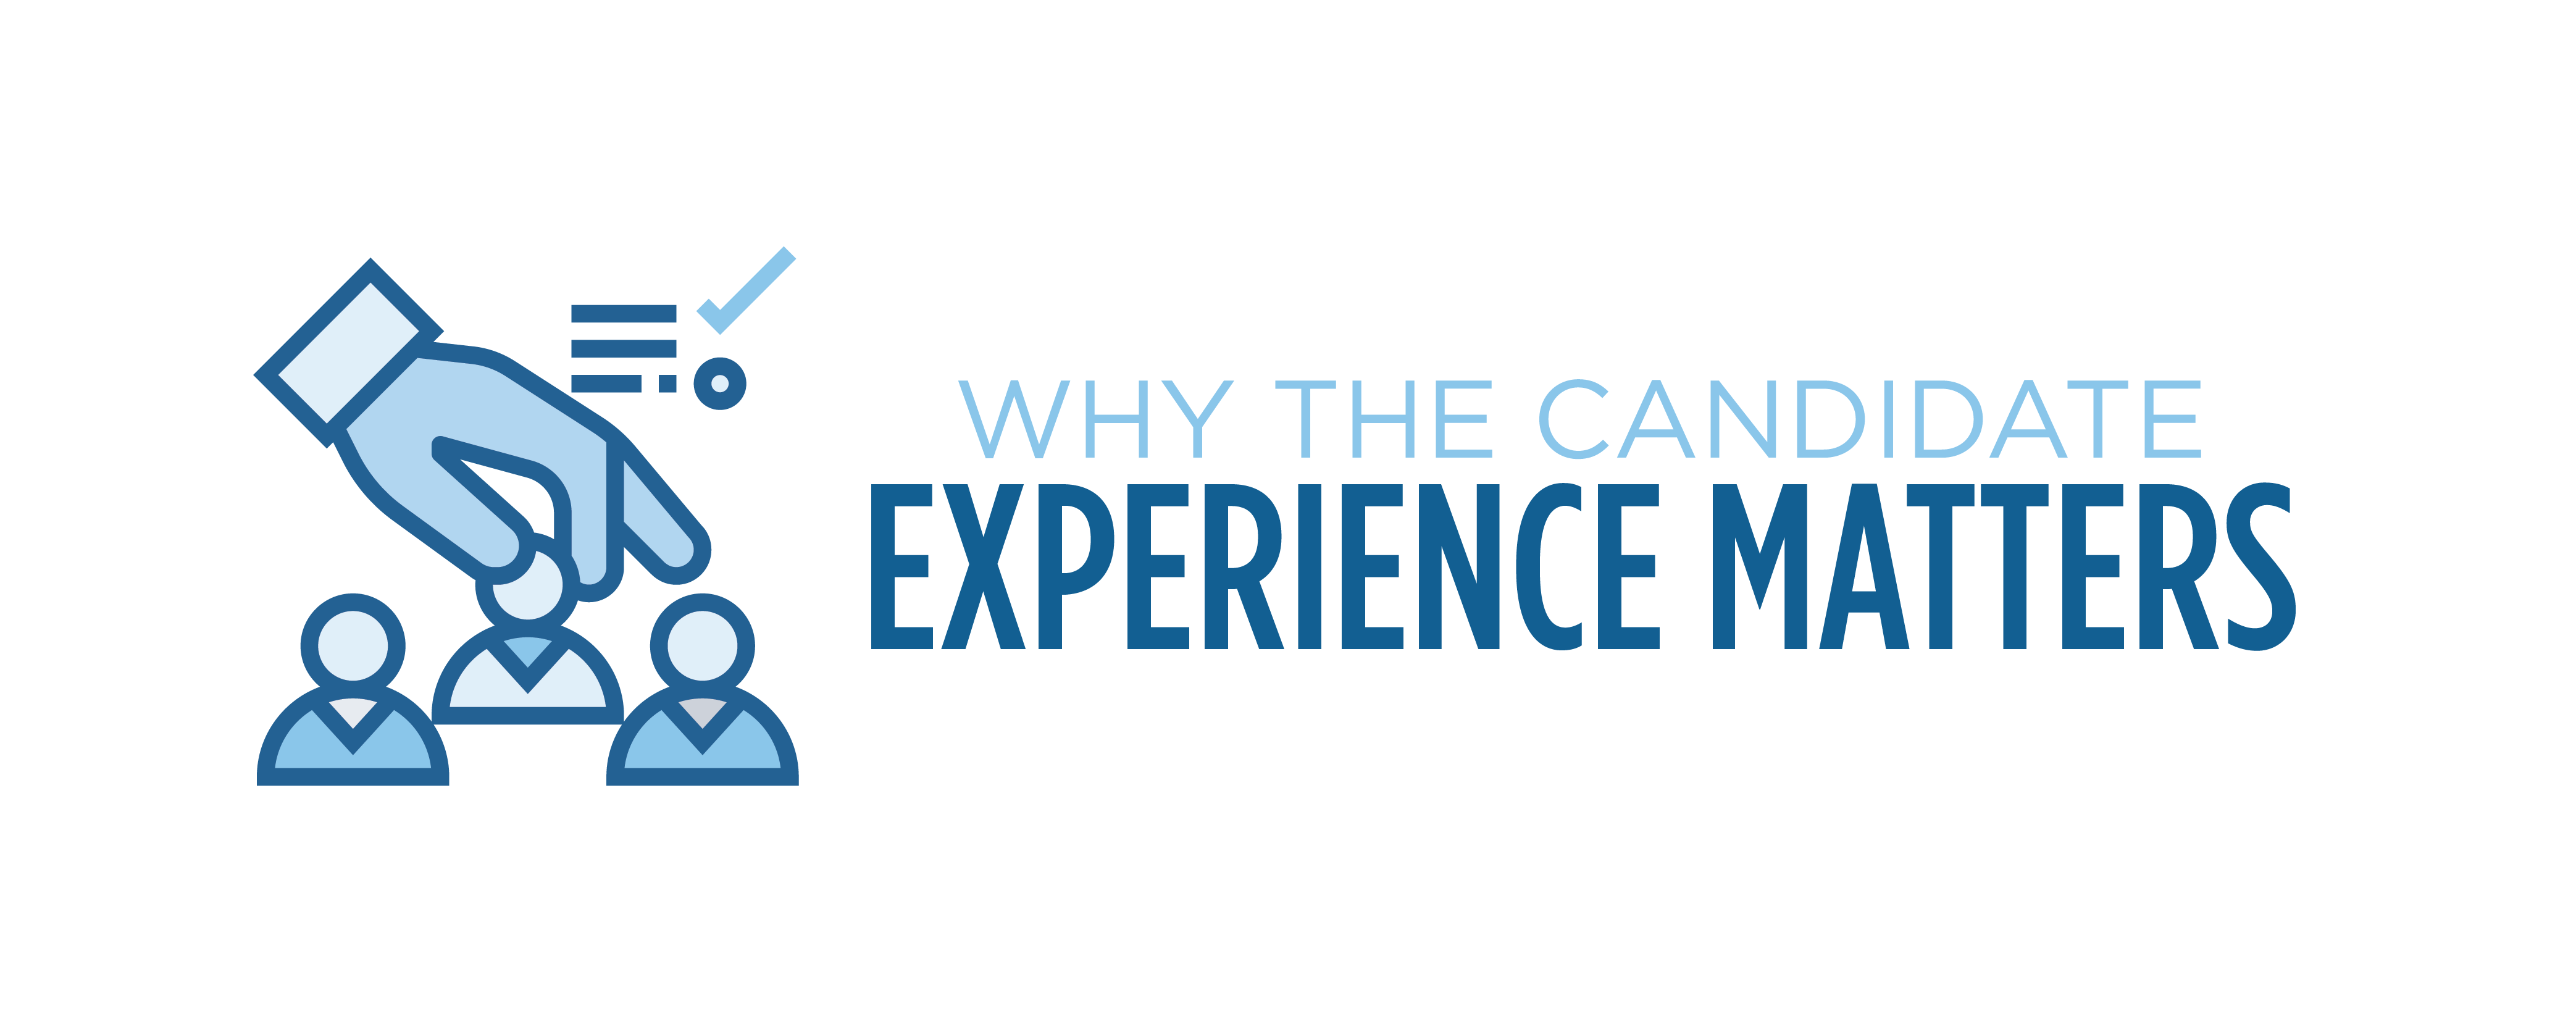 why the candidate experience matters